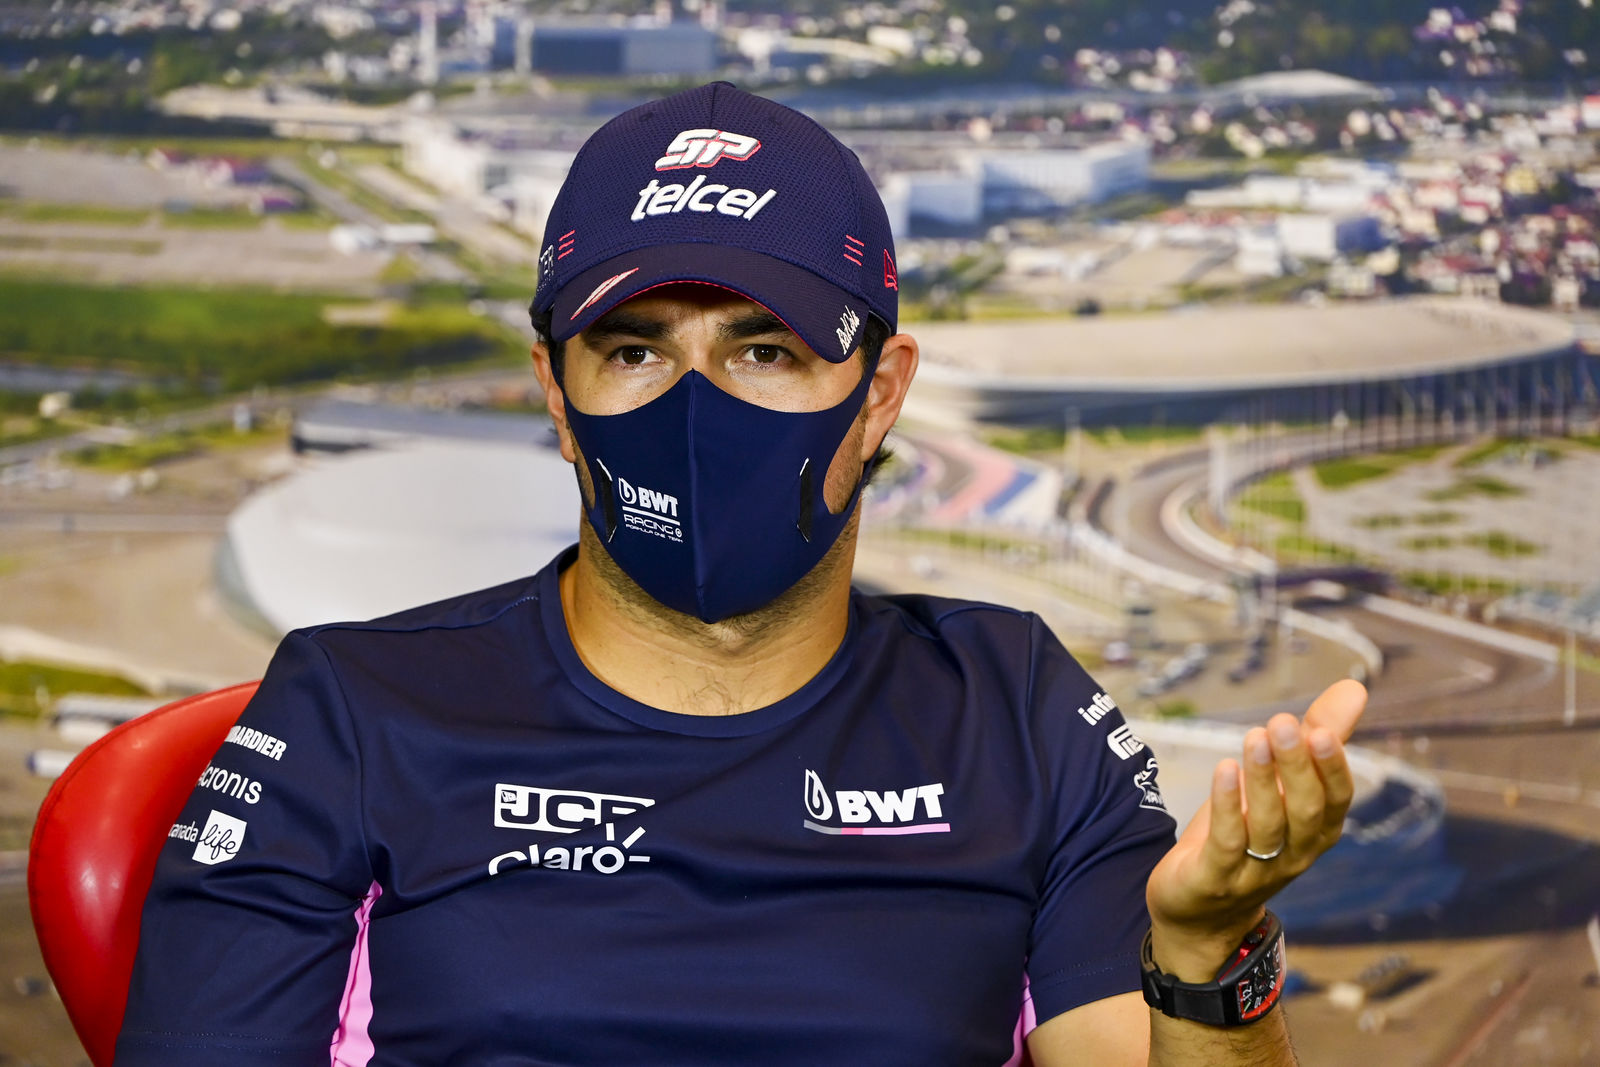 Perez clears the air after saying some in Racing Point 'hide things'